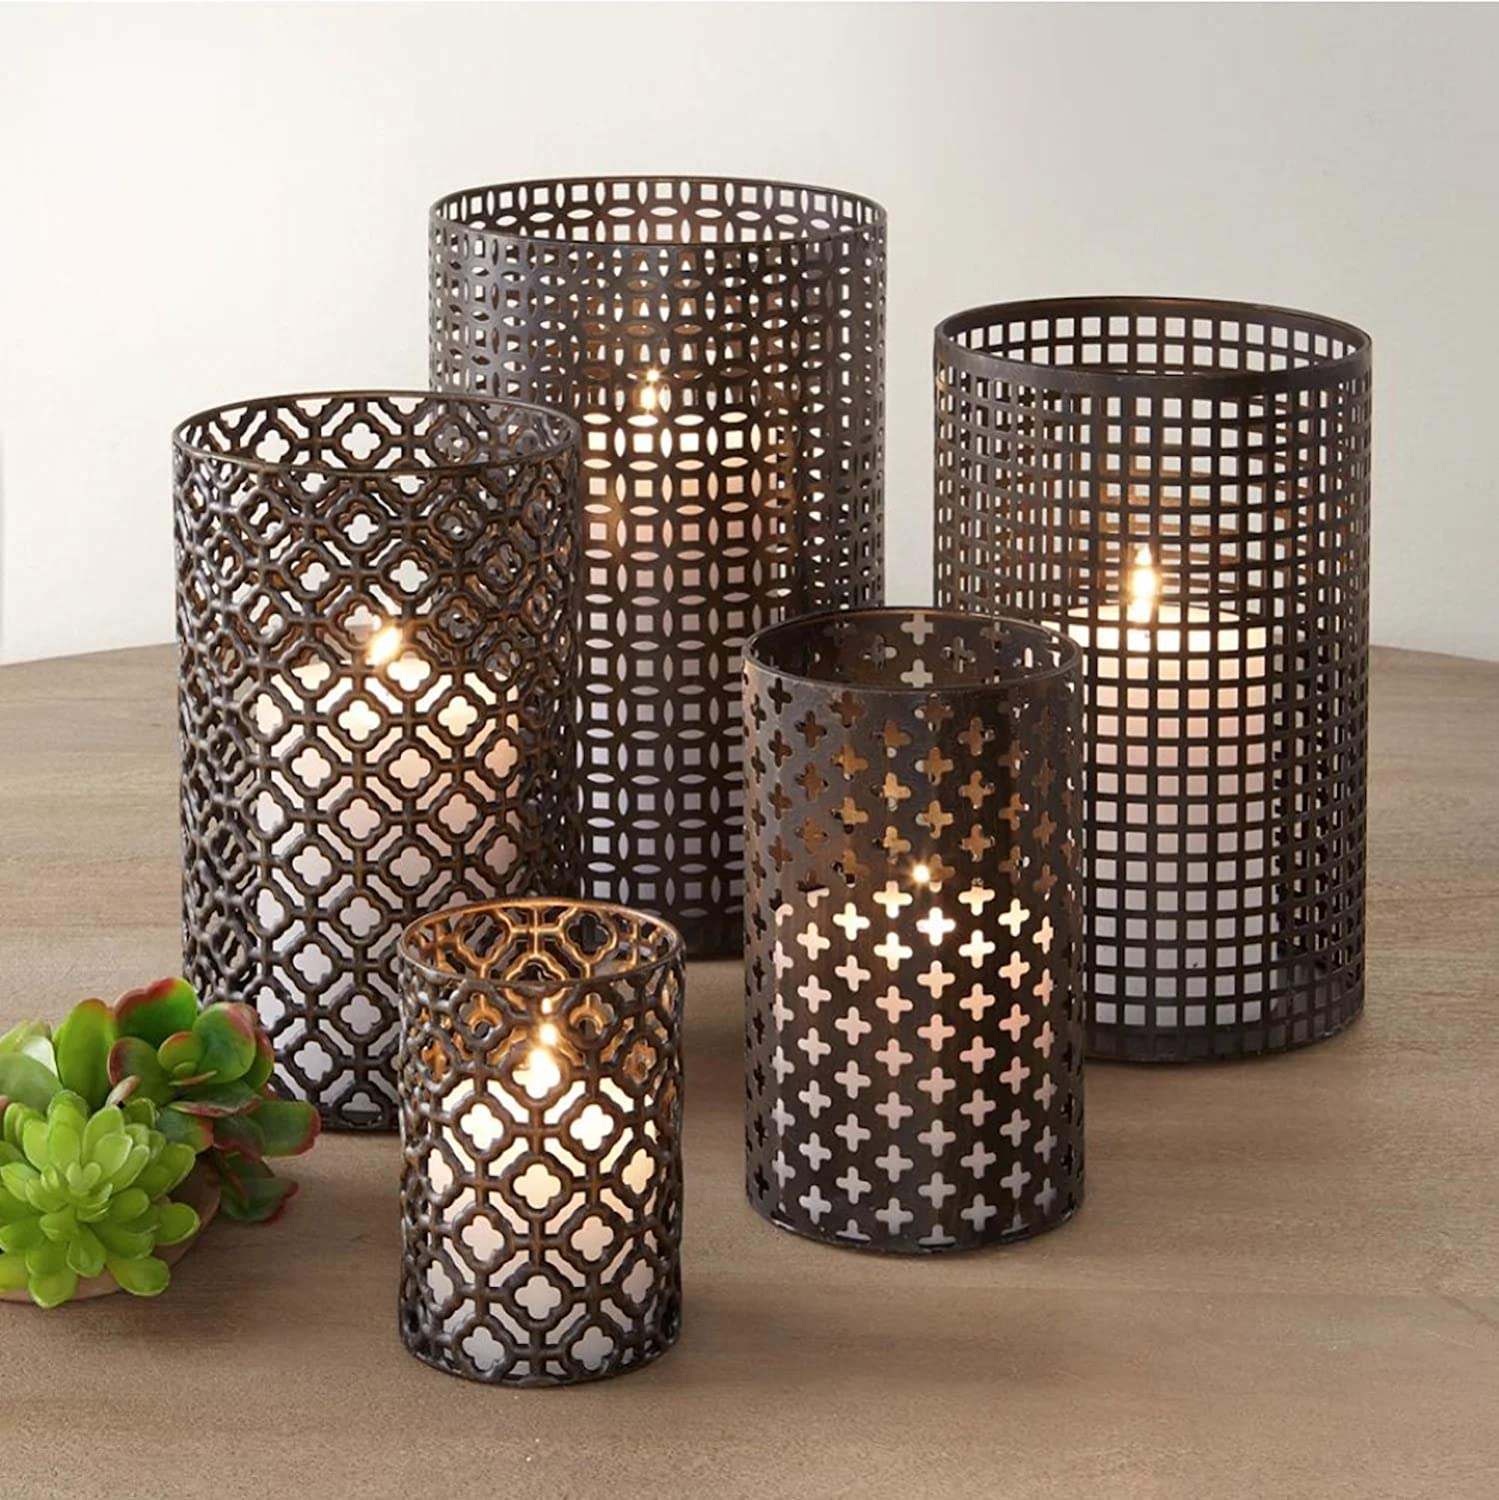 DQ Home Decor Set of 5 Large Cylindrical Metal Candle Holders Bronze Hurricane Pillar Candleholder Rustic Table Candlestick Holders Great Centerpiece for Home Decor: Kitchen & Dining